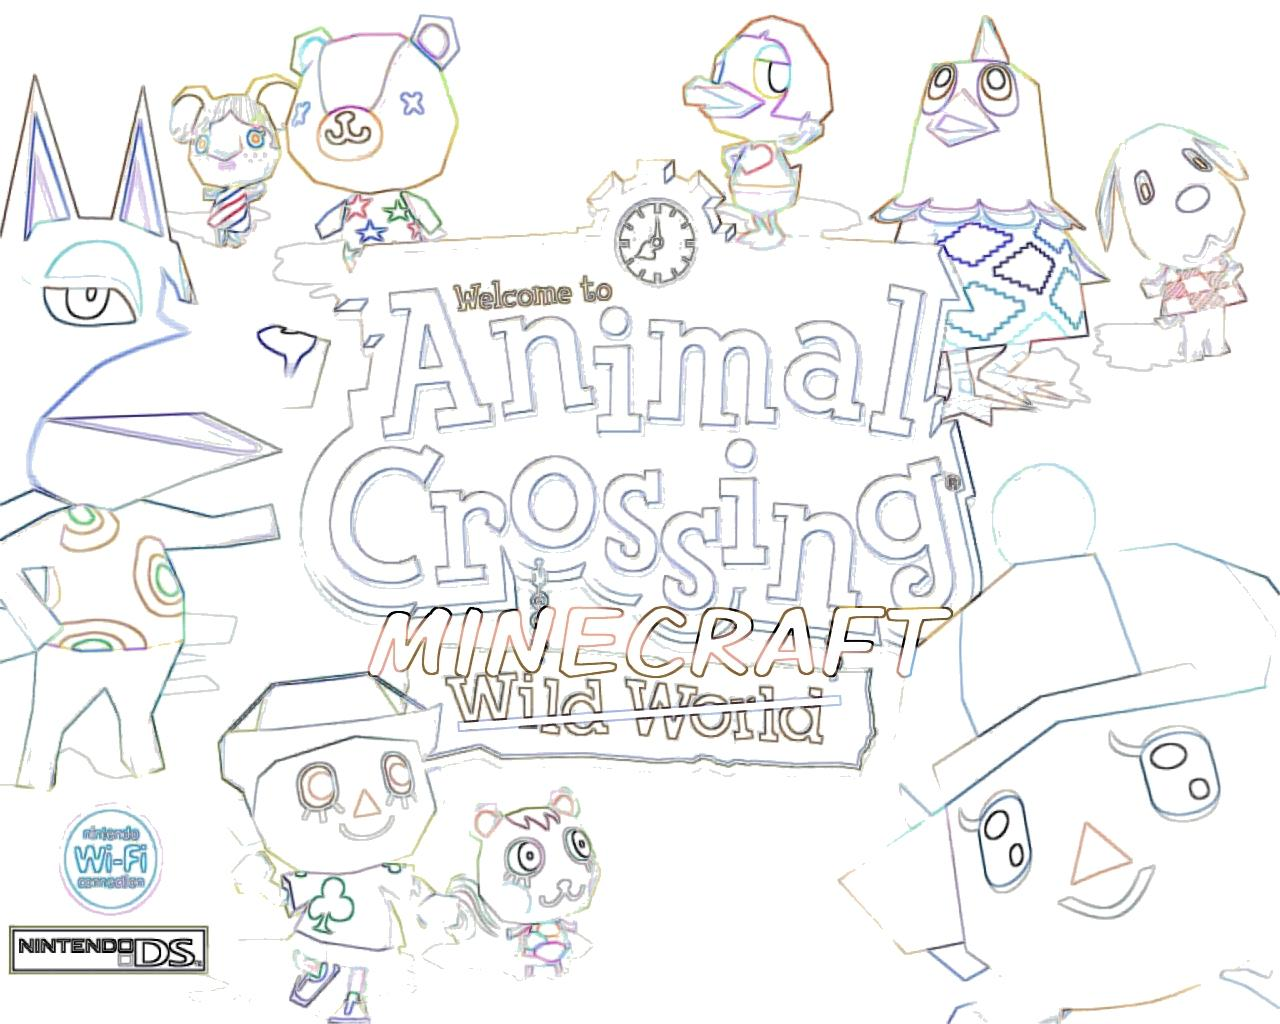 Animal crossing minecraft texture pack animal crossing gumiabroncs Choice Image